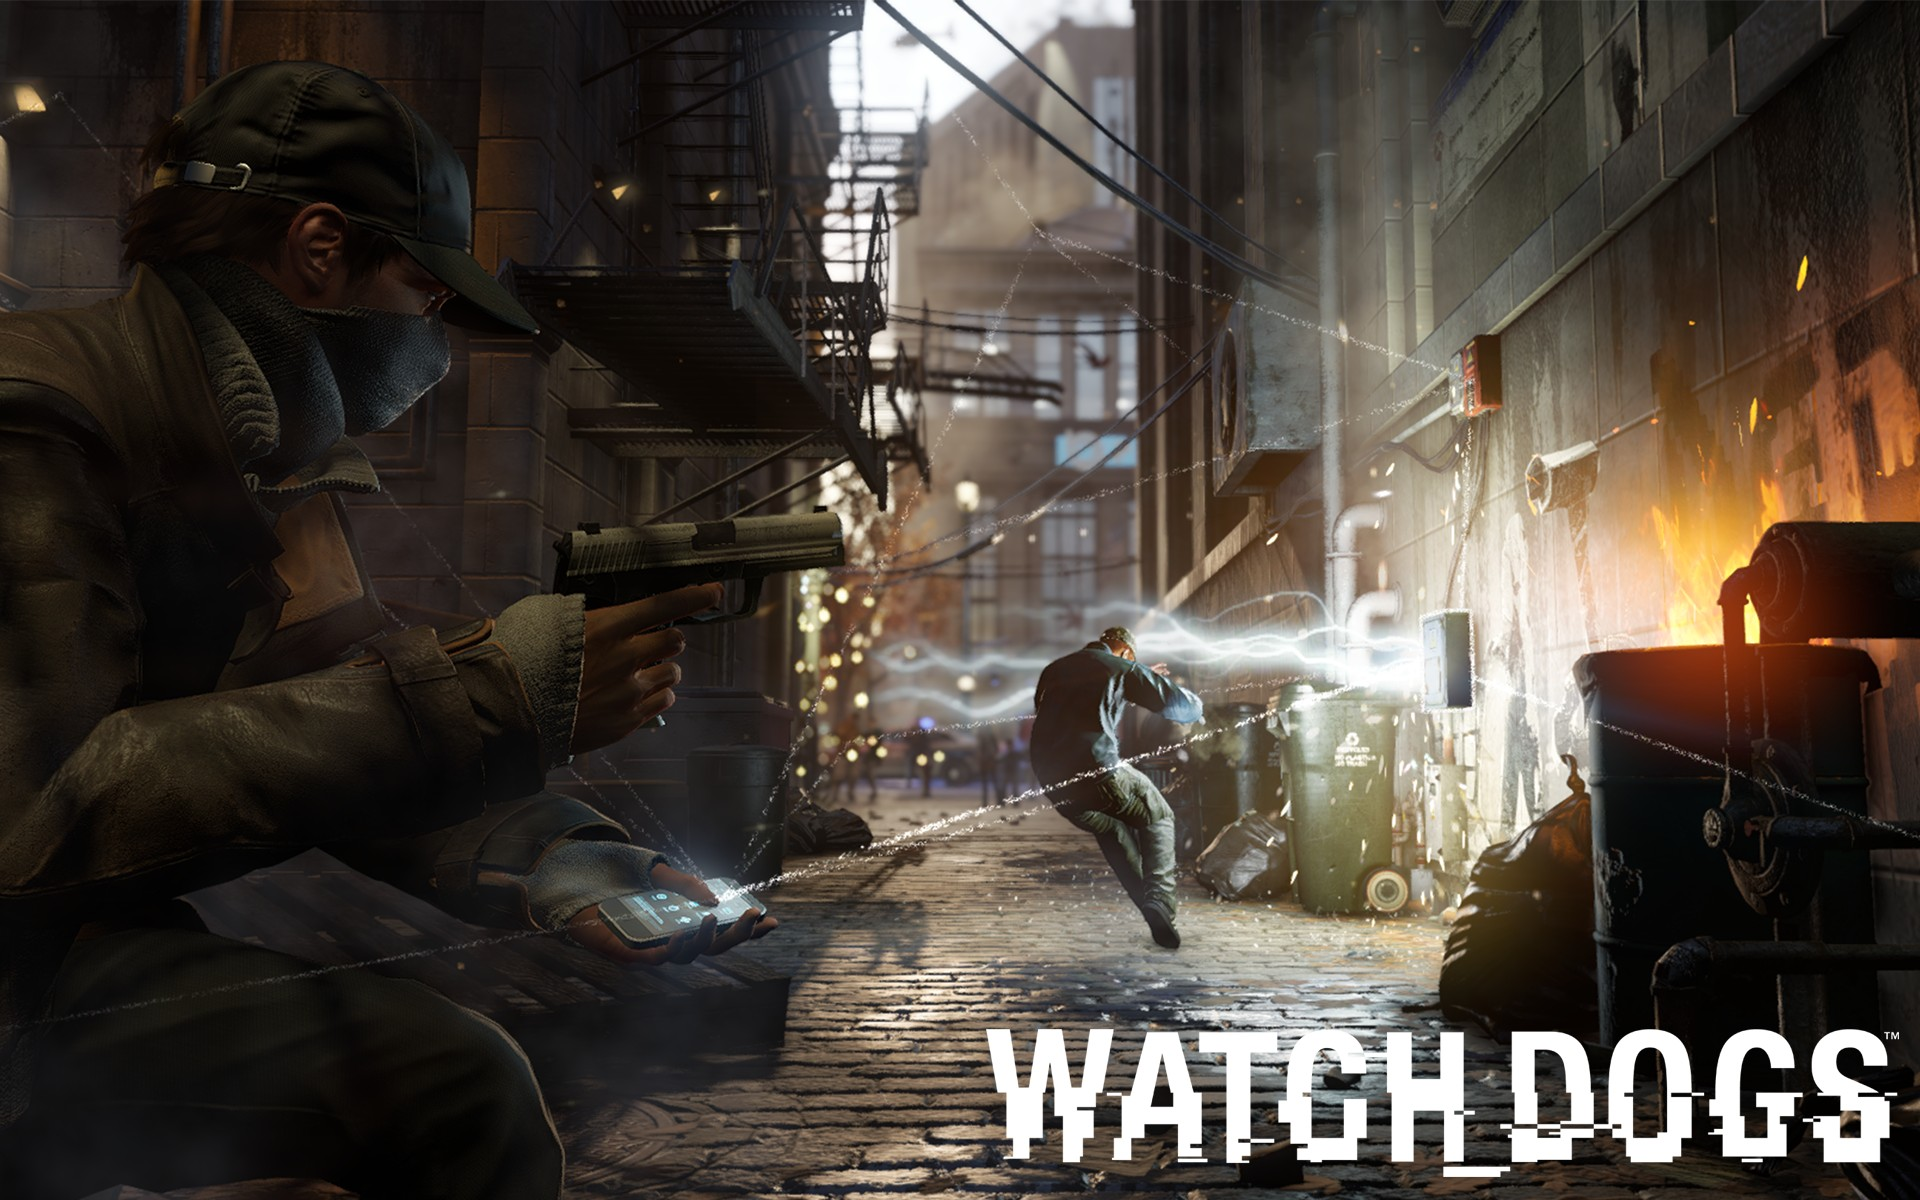 Watch Dogs   Wallpaper   HD   Select Game 1920x1200